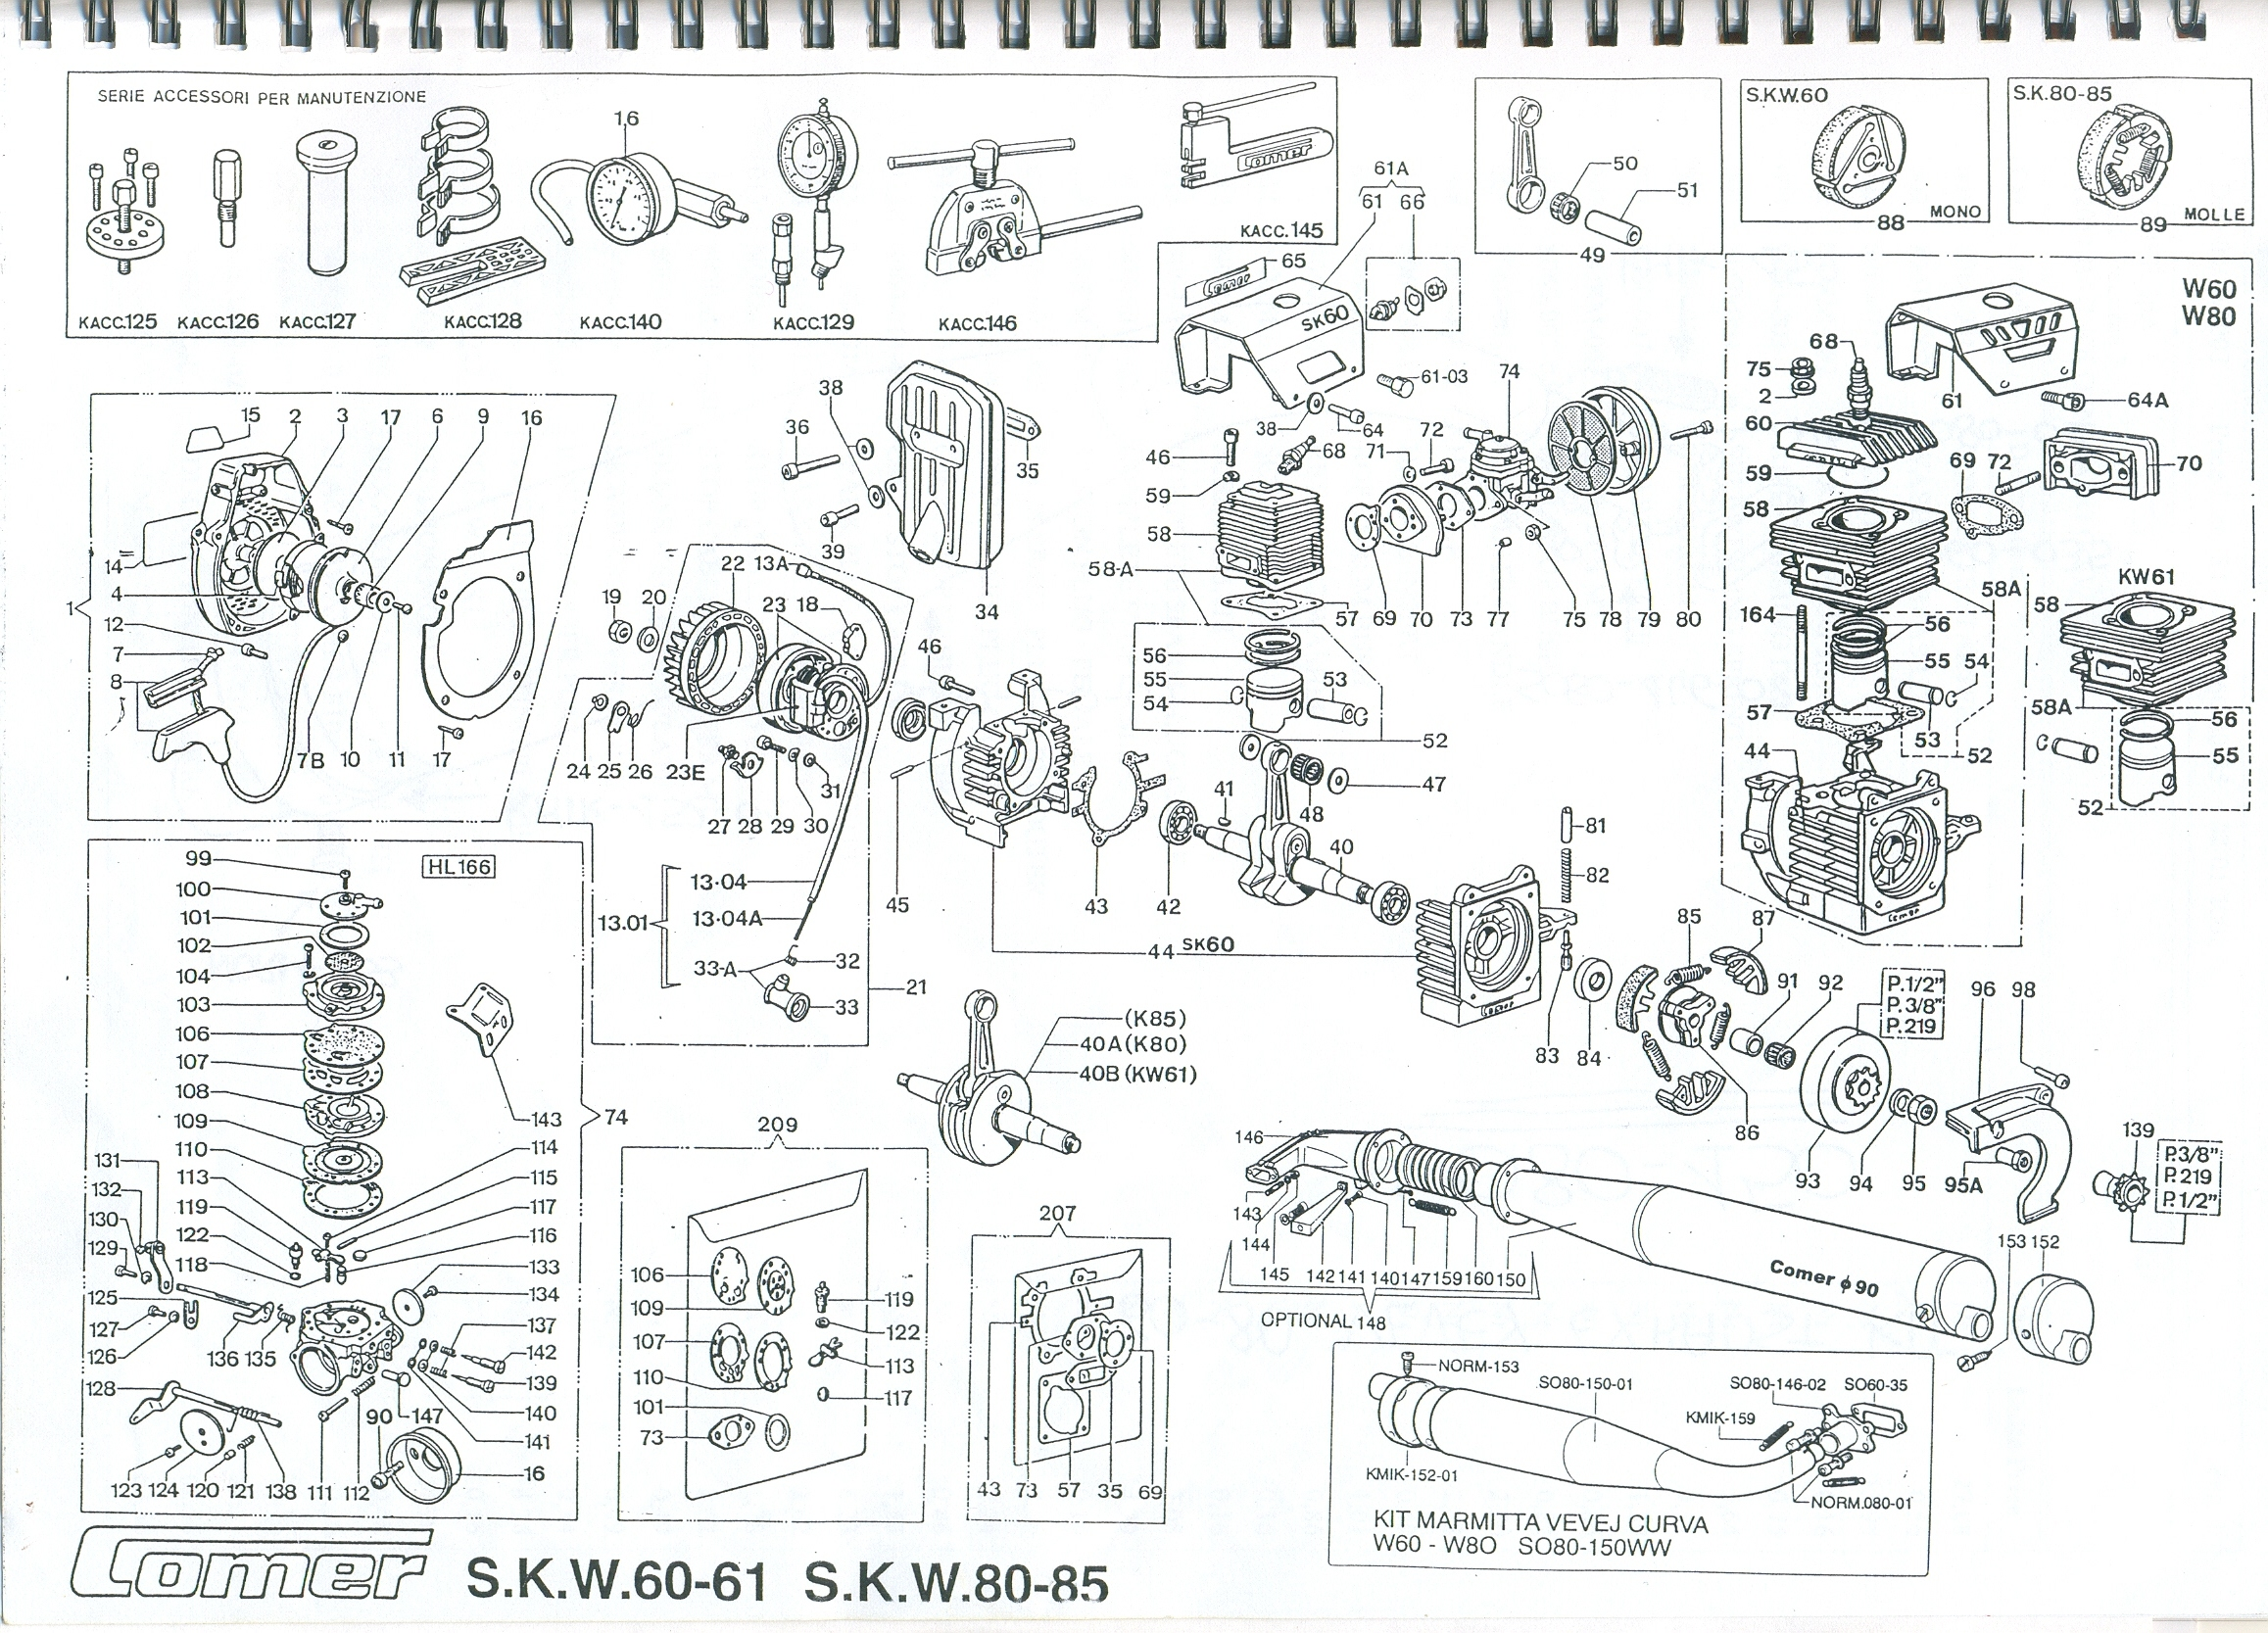 small resolution of how can get full engine diagrams grabcad questions jet engines how they work ge jet engine diagram